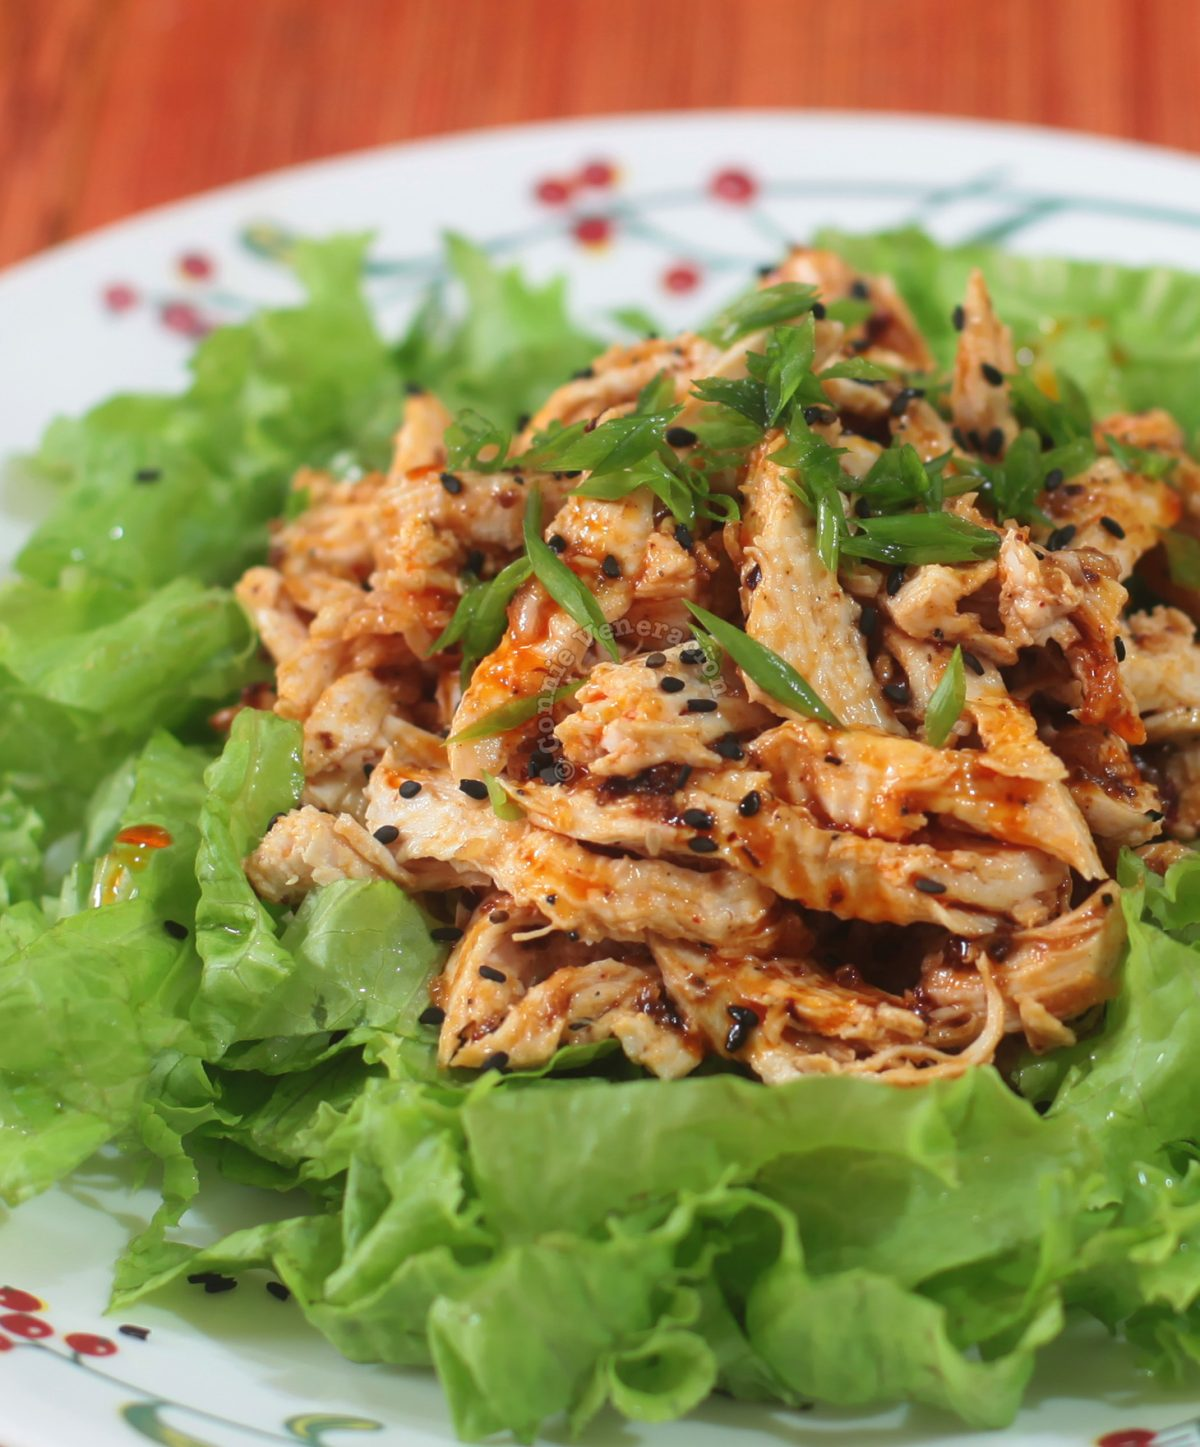 Sichuan Bang Bang Chicken on a Bed of Lettuce